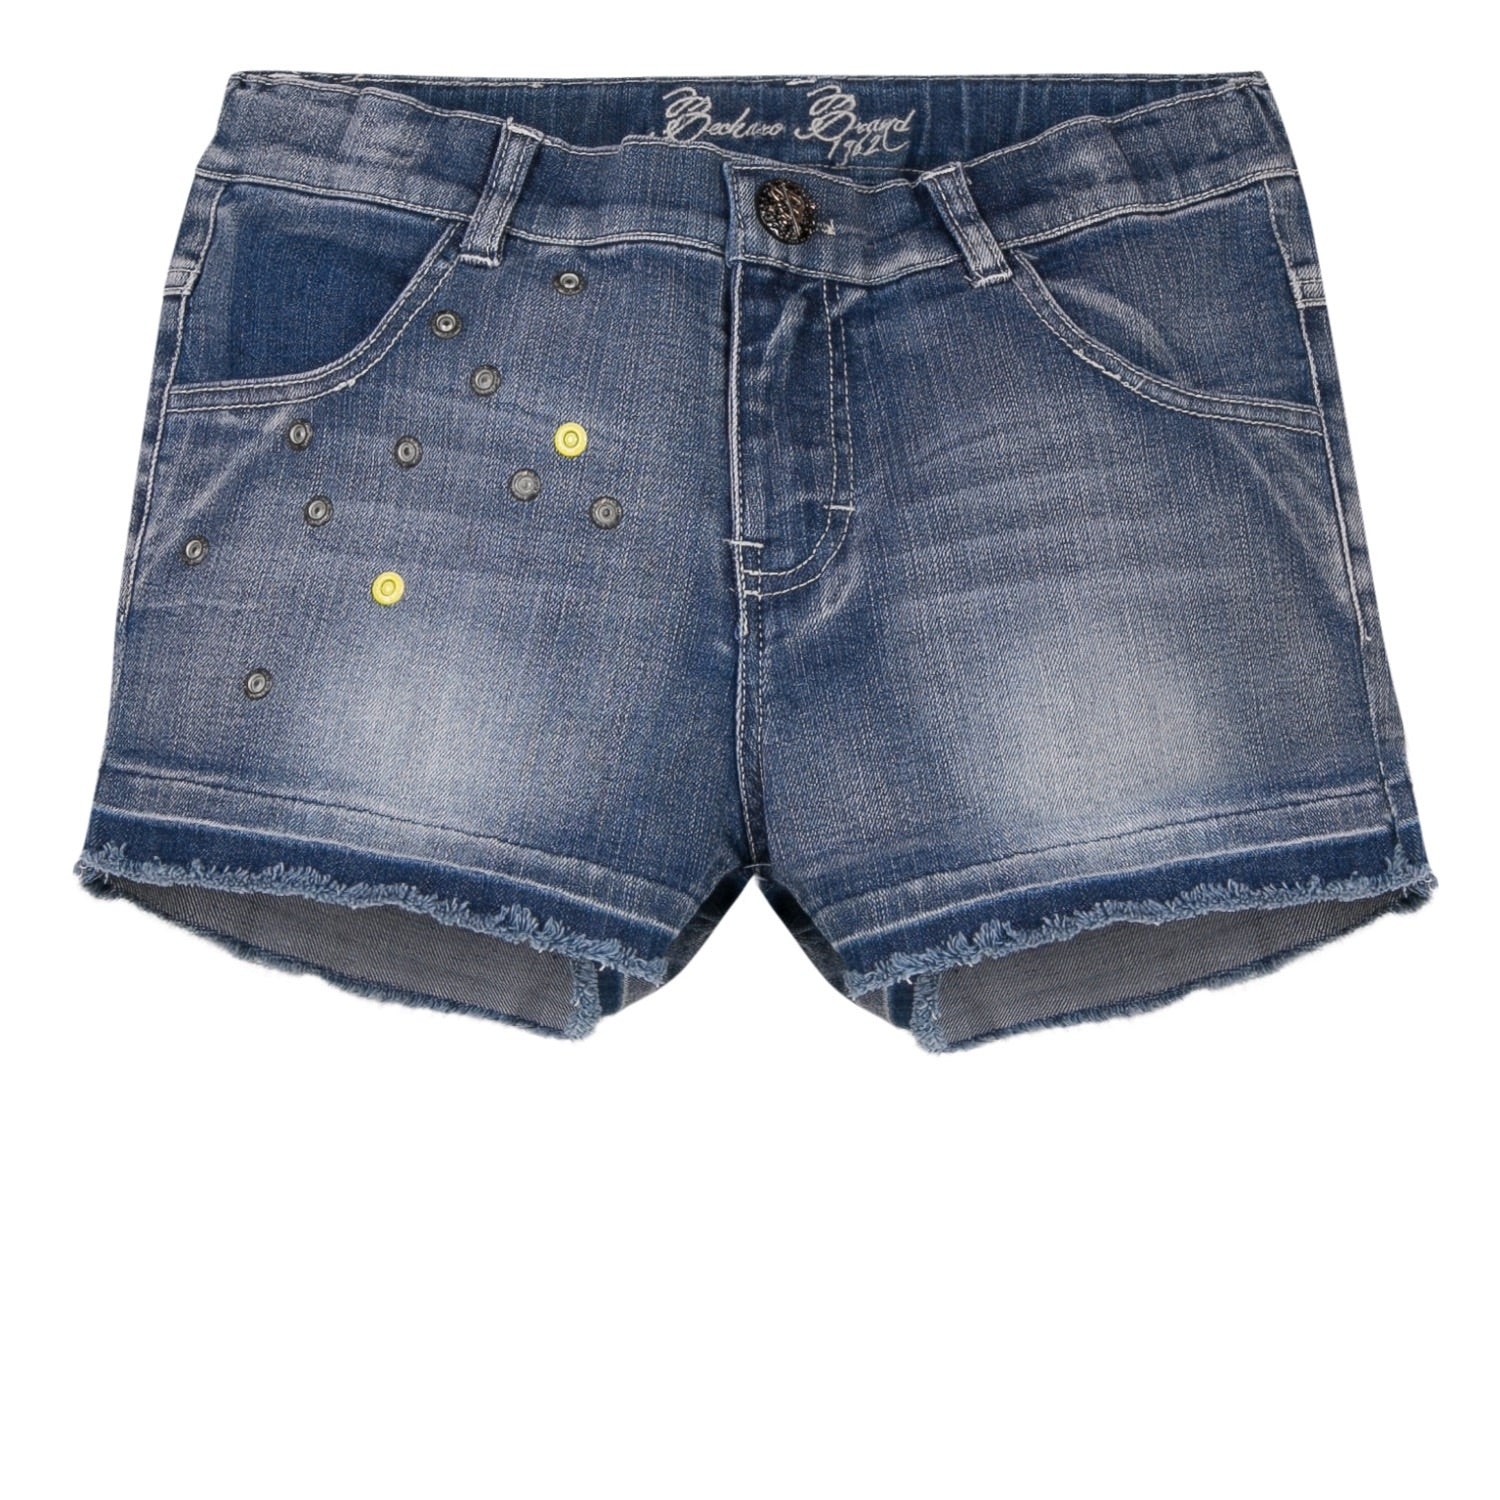 Beckaro Denim Shorts